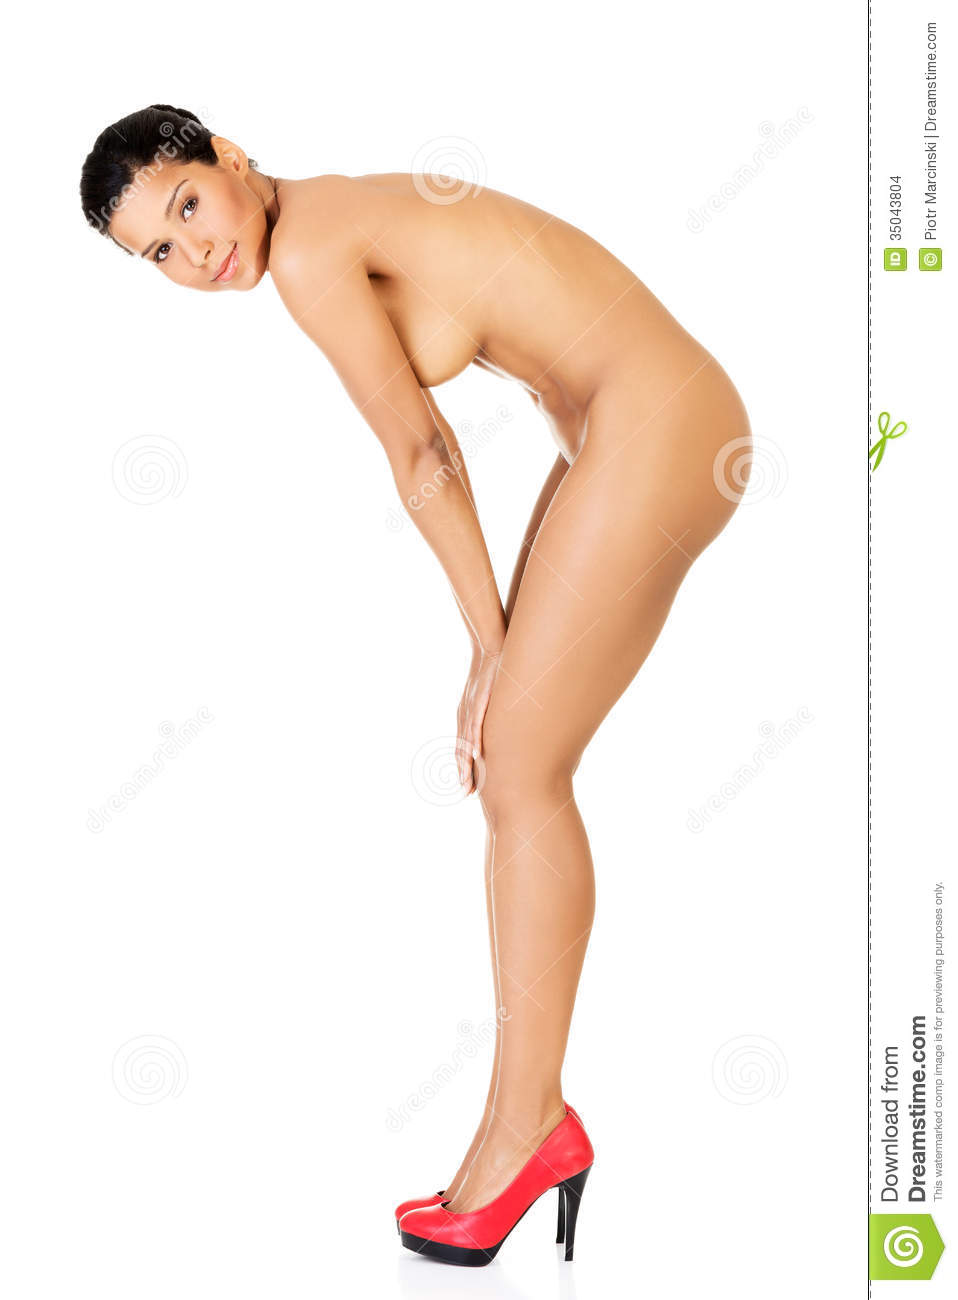 Naked woman in high heels